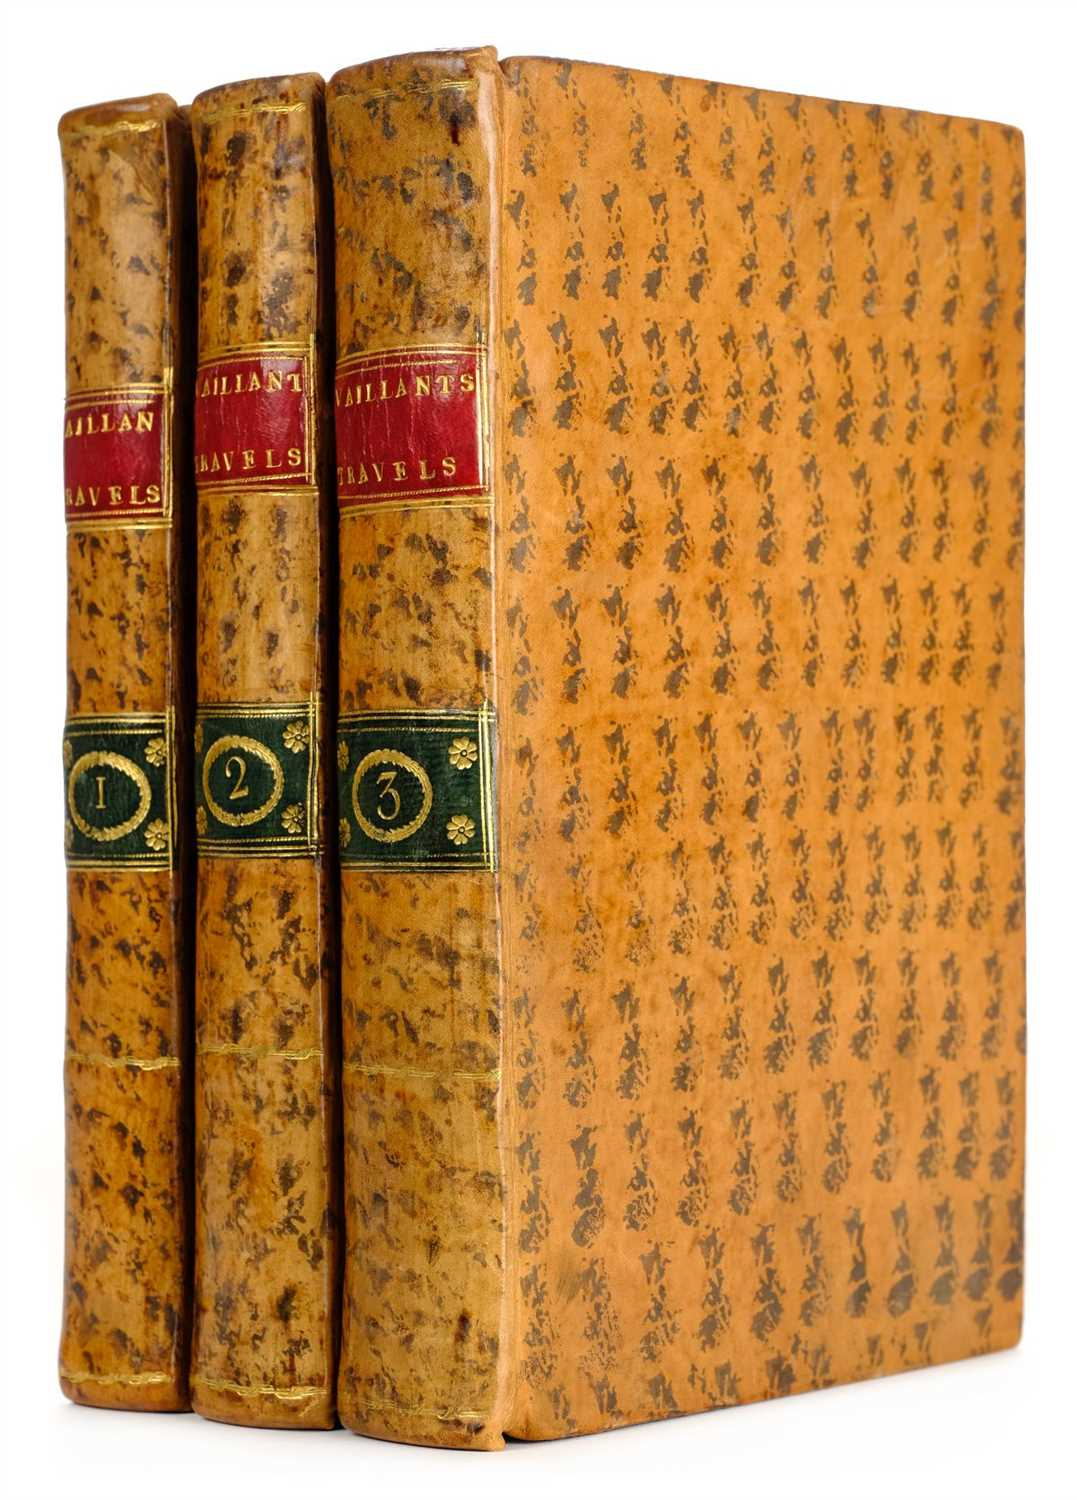 Lot 323 - Le Vaillant (Francois). New Travels into the Interior Parts of Africa, 1796